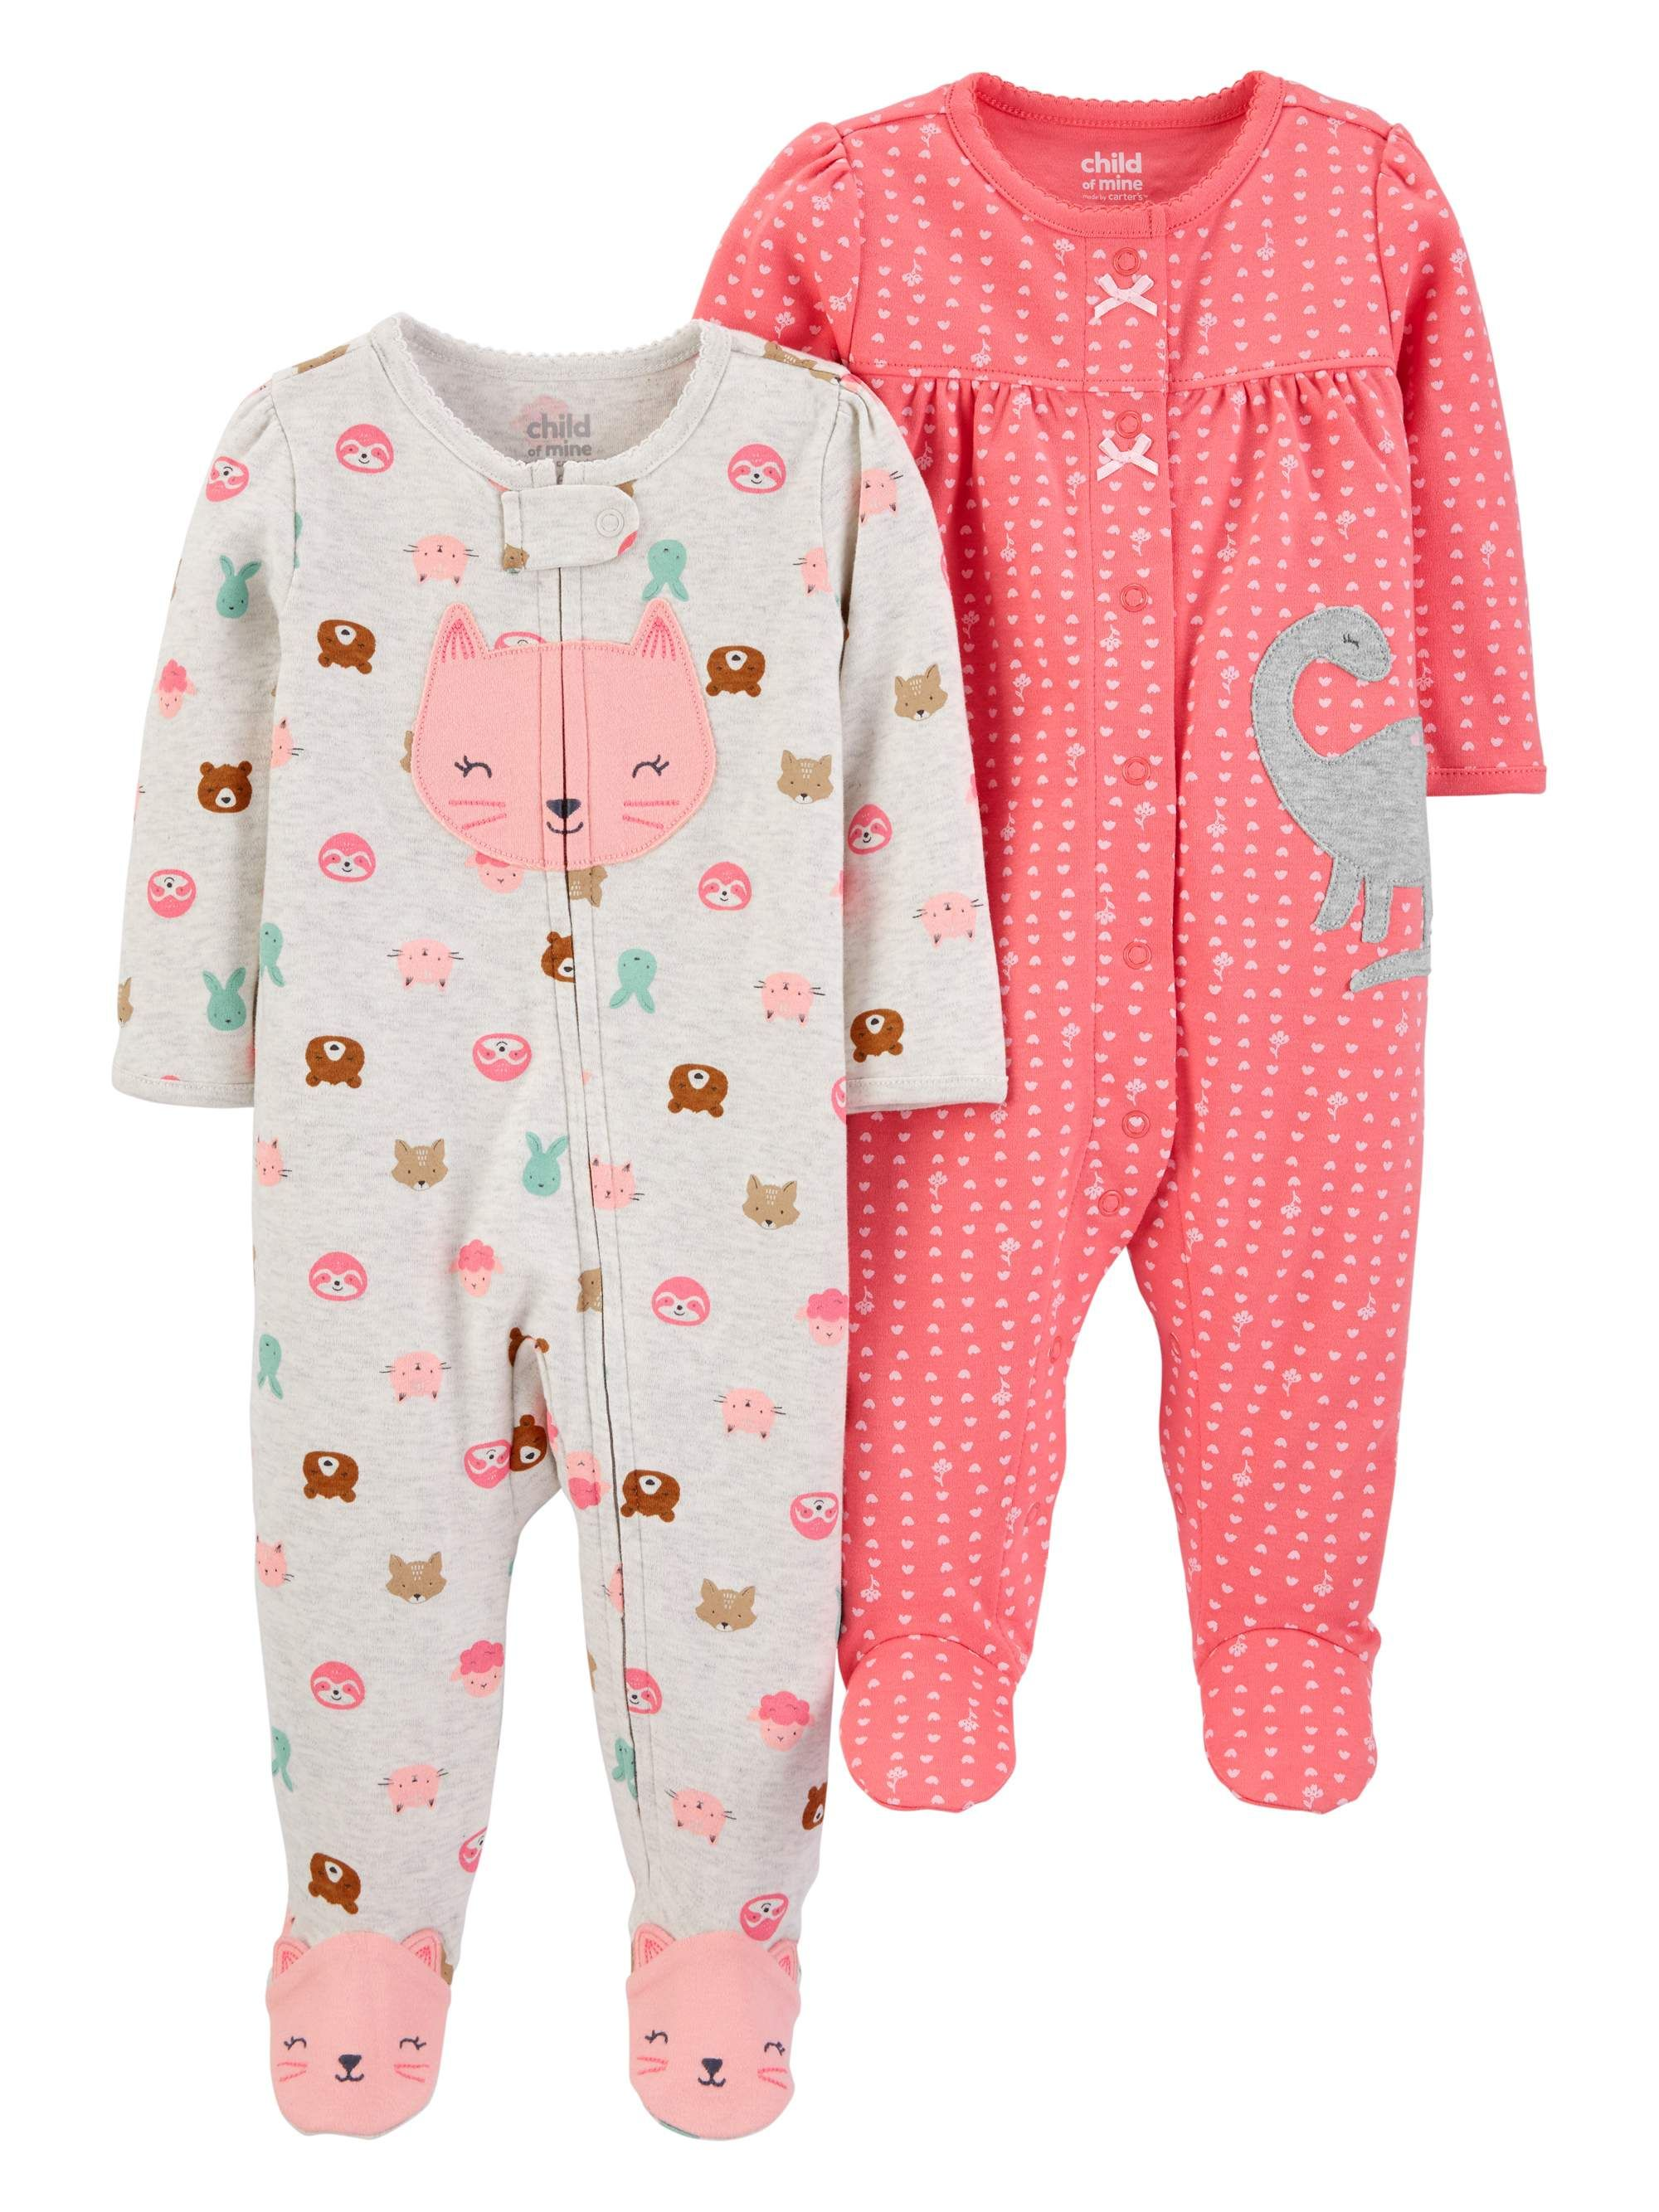 18 Months Floral Heart Carters Baby Girls Graphic Footie